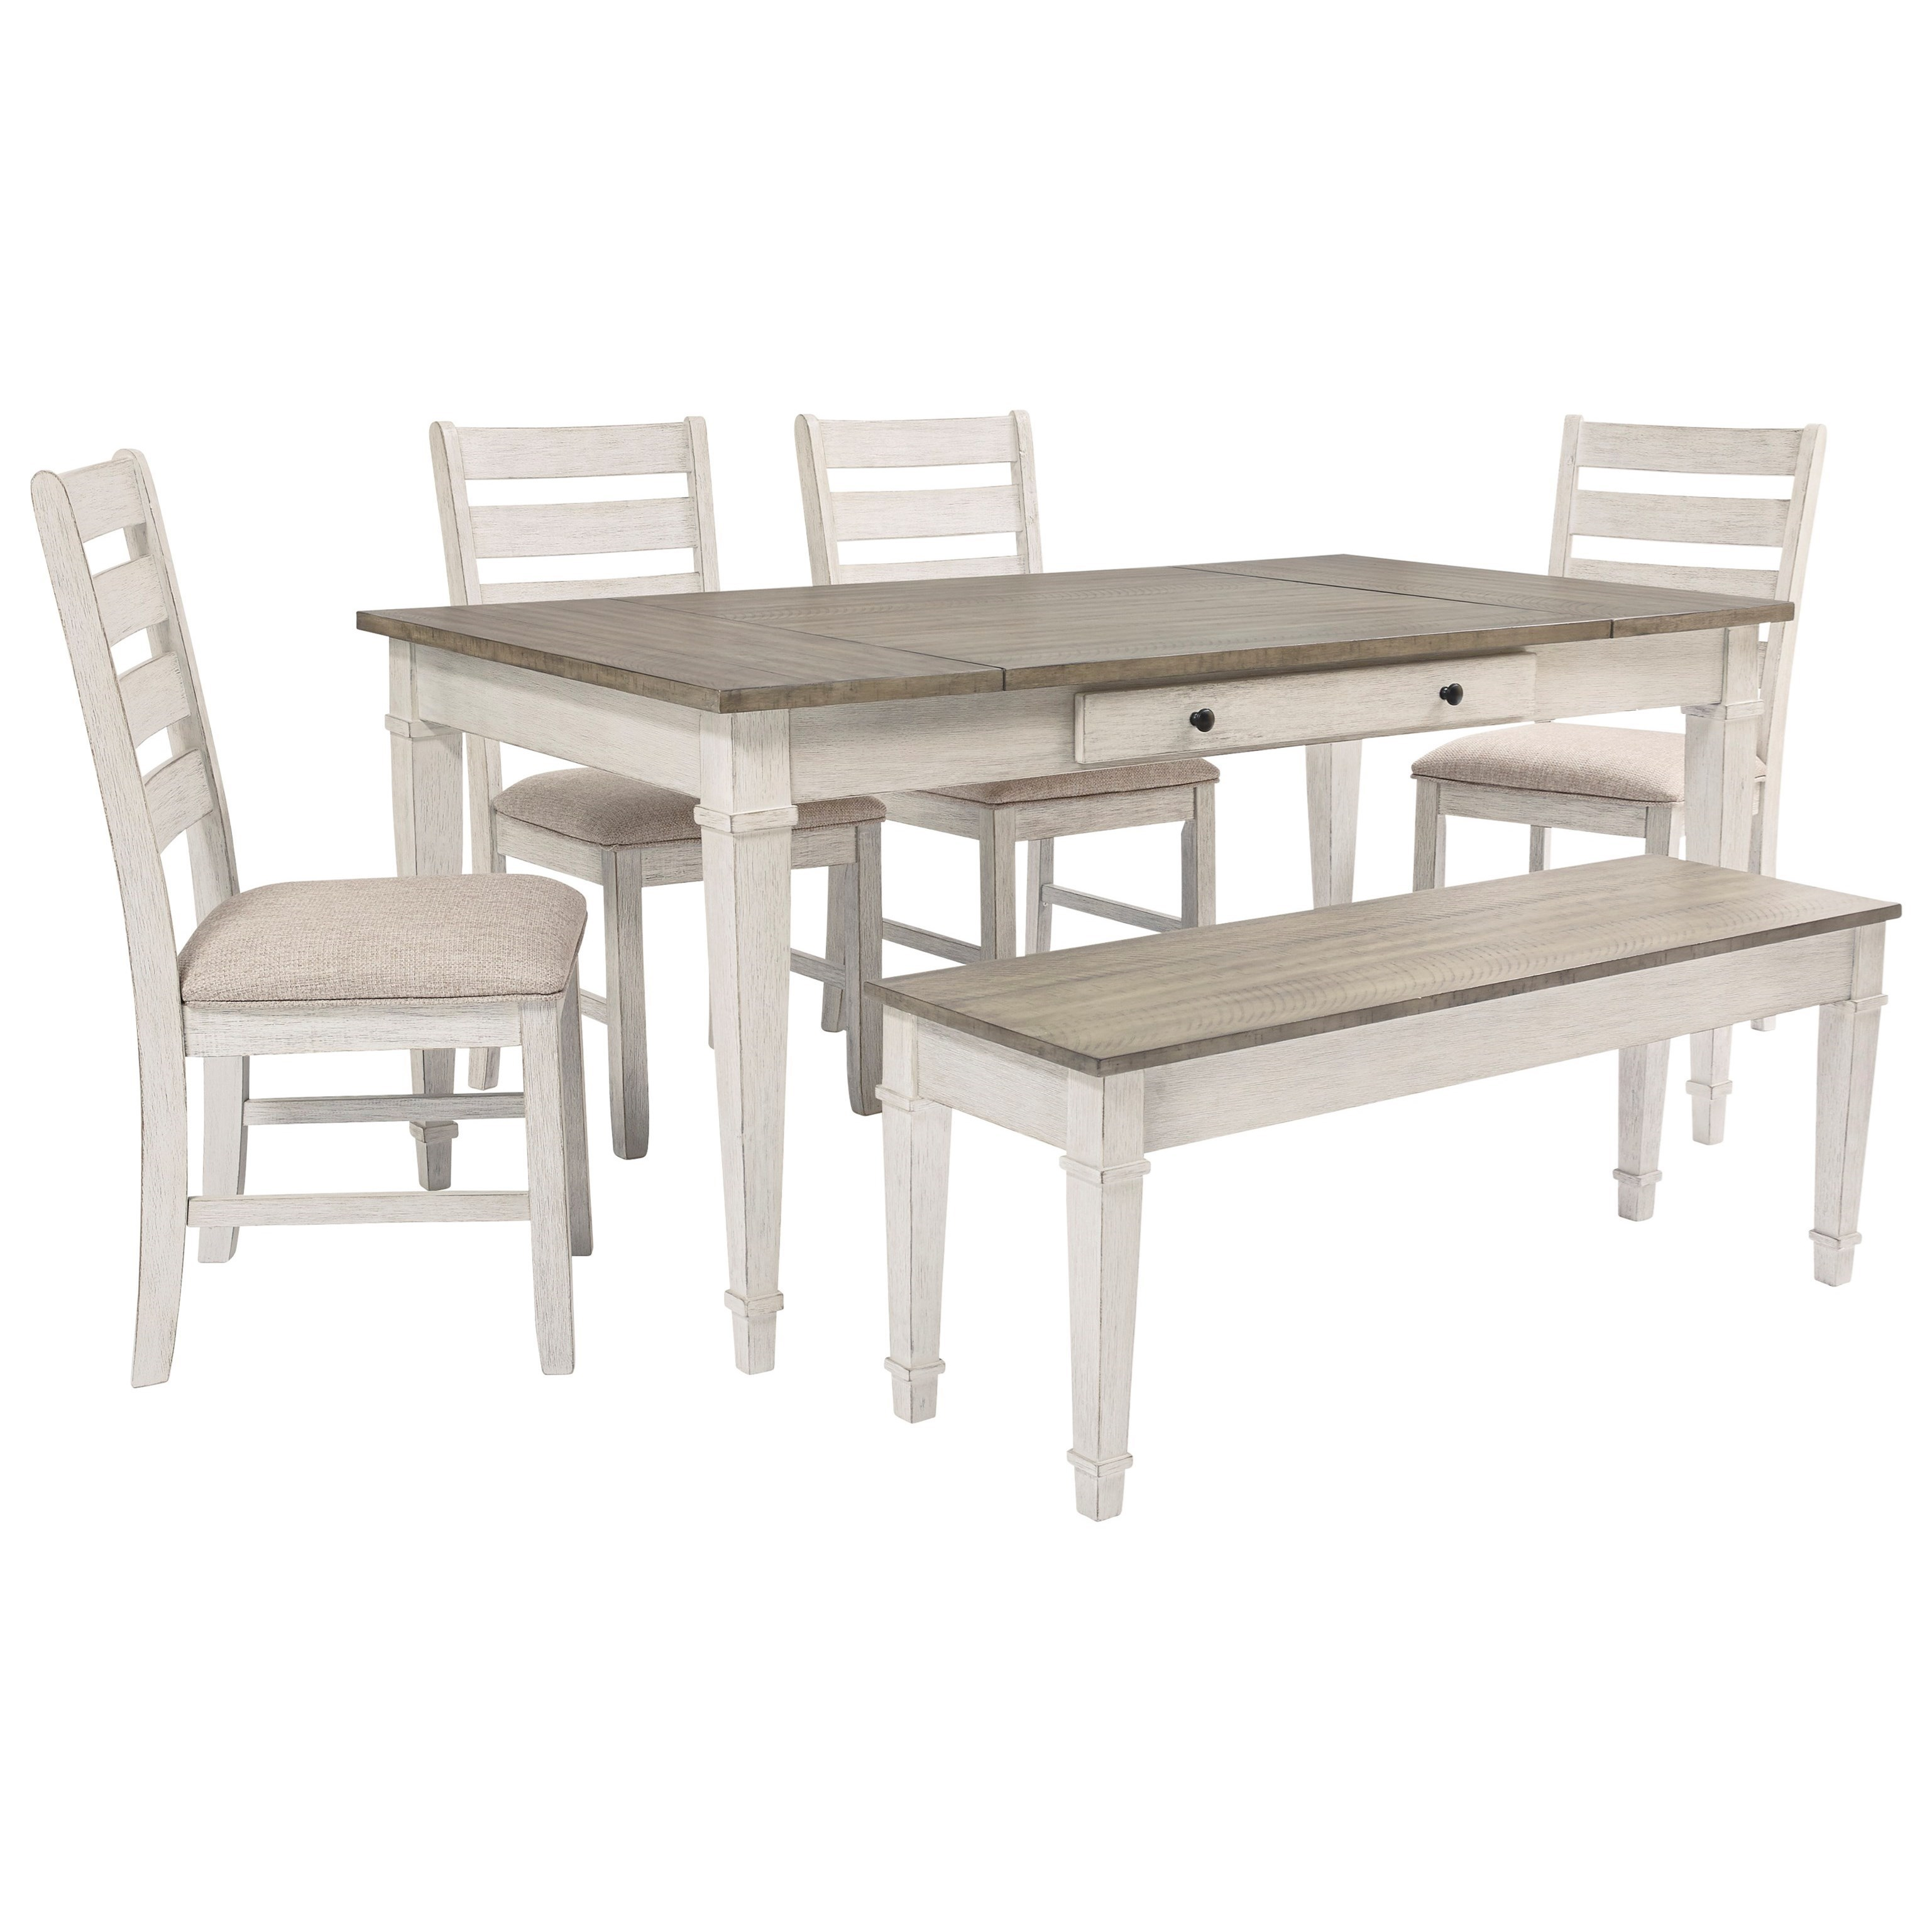 Signature Design By Ashley Skempton Rect Dining Table Set W Storage Bench Wayside Furniture Table Chair Set With Bench